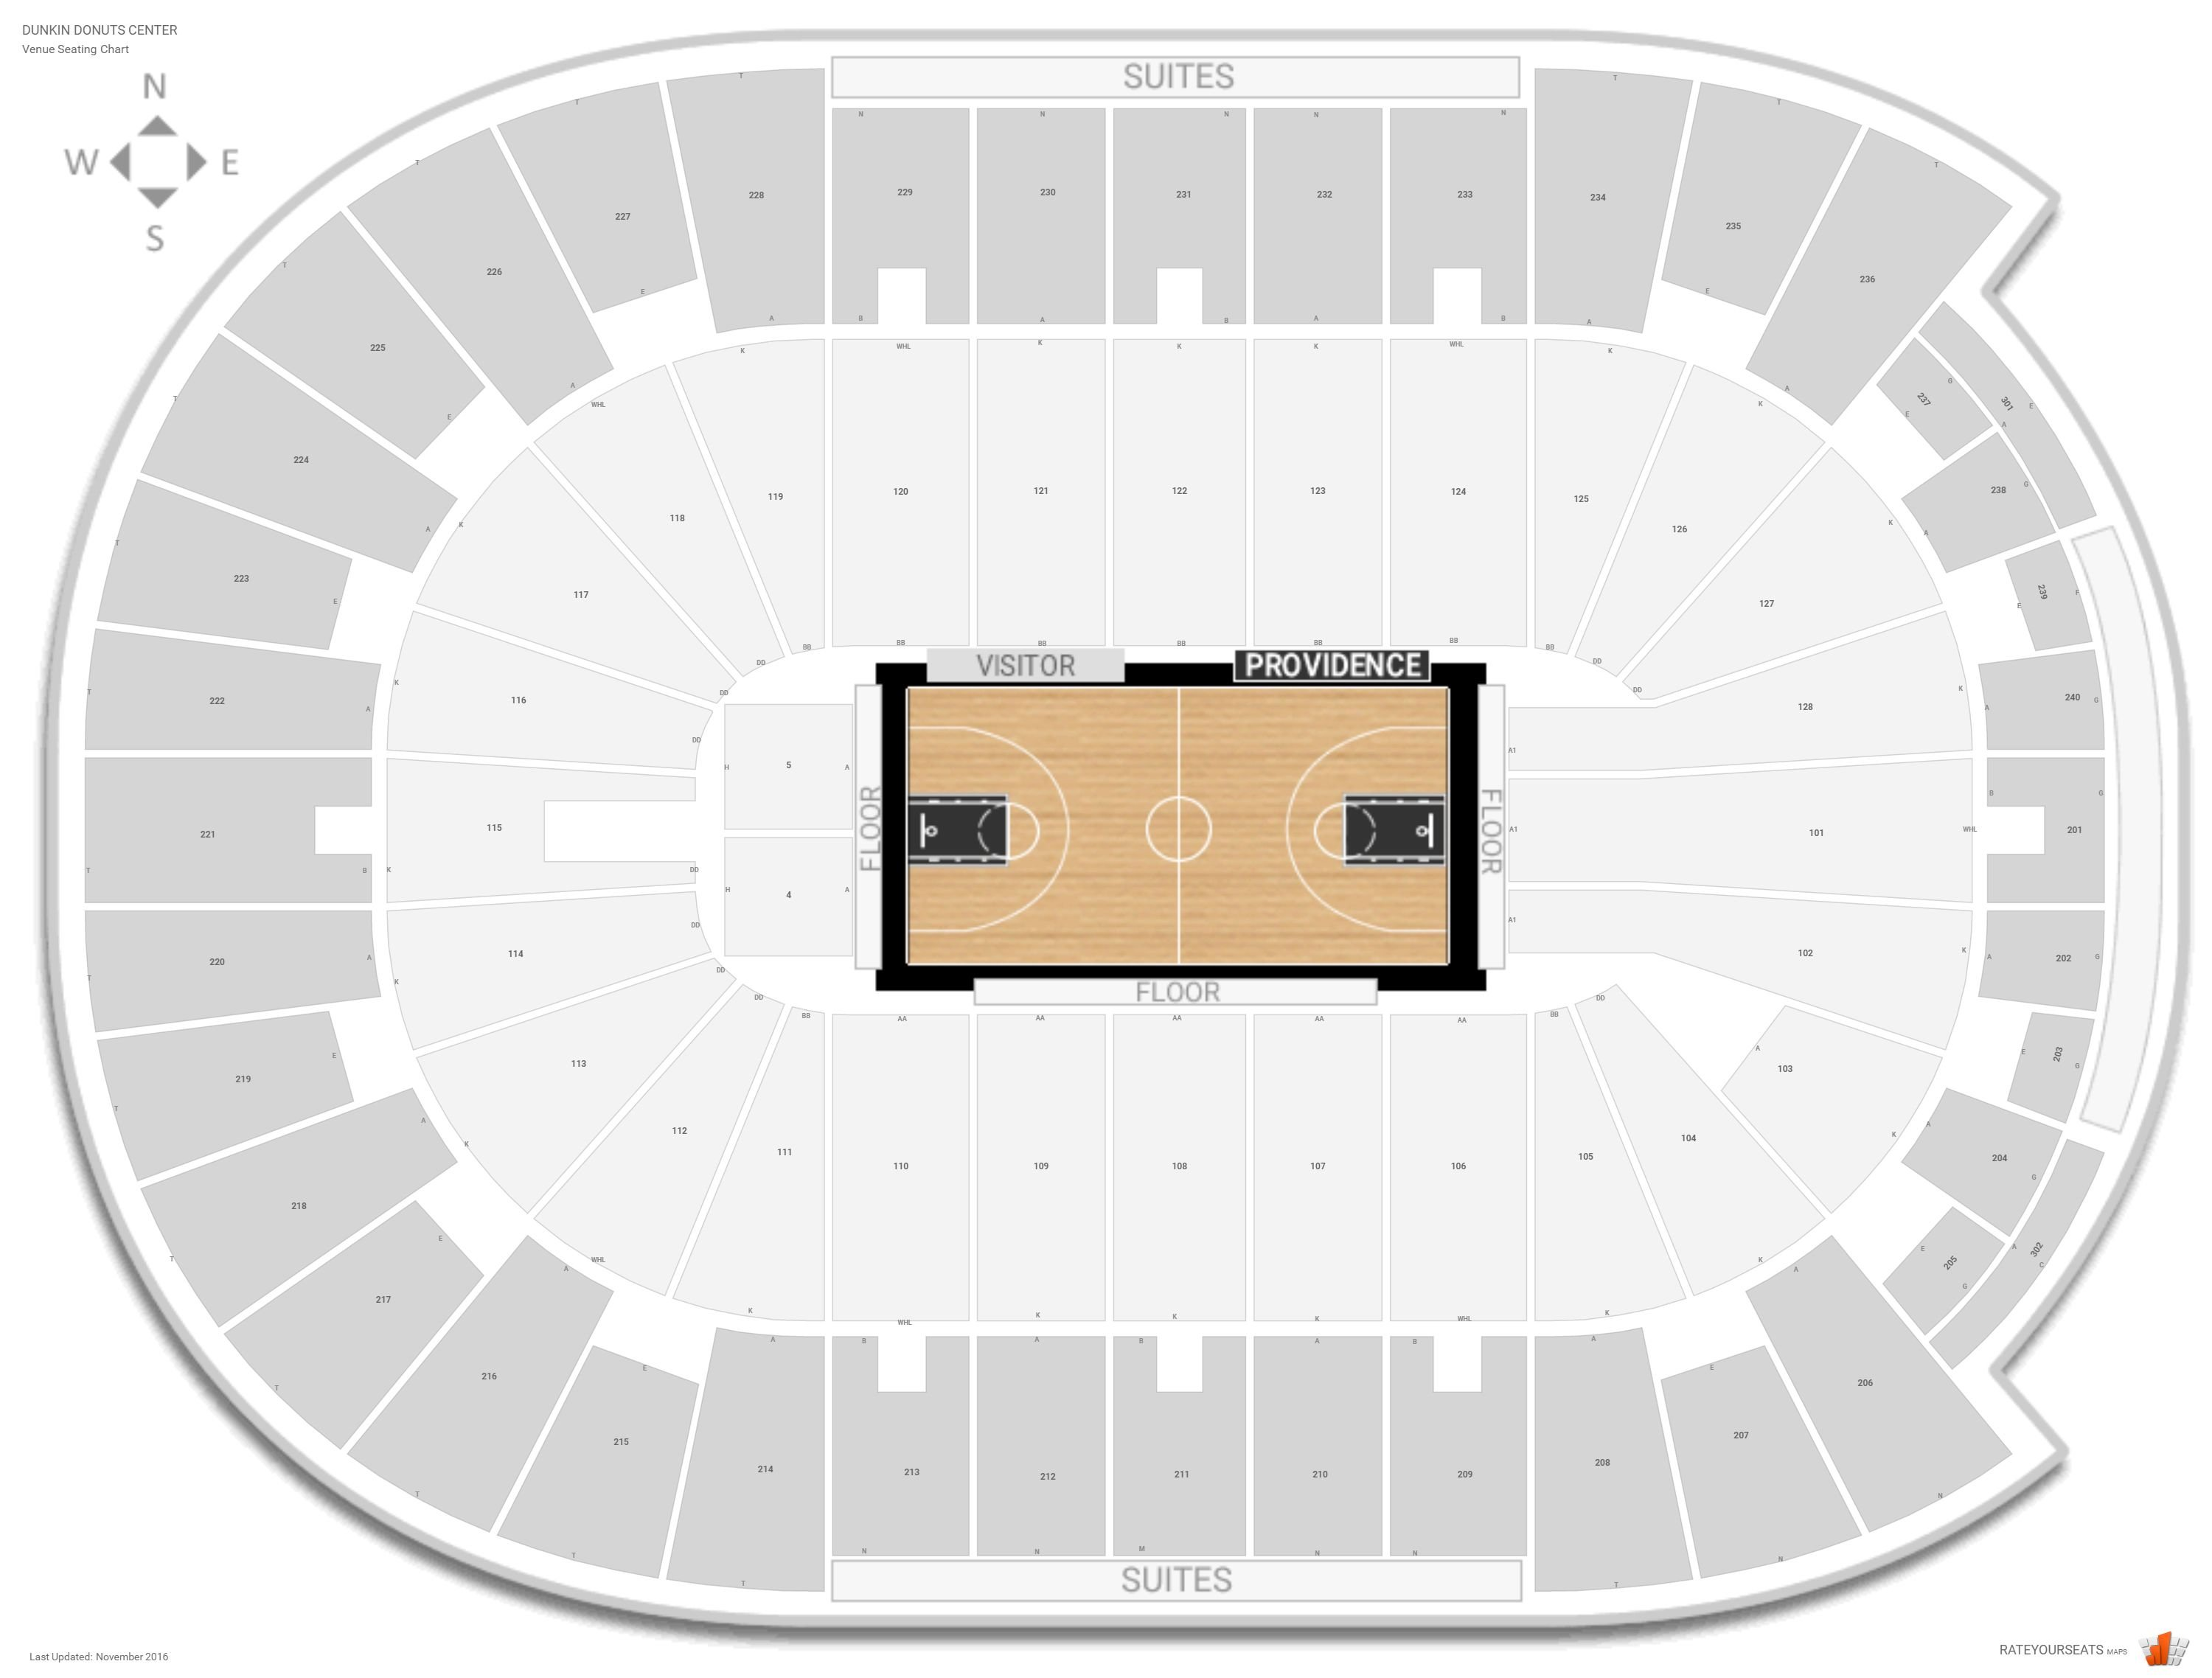 Dunkin Donuts Center Seating Chart with Row Numbers